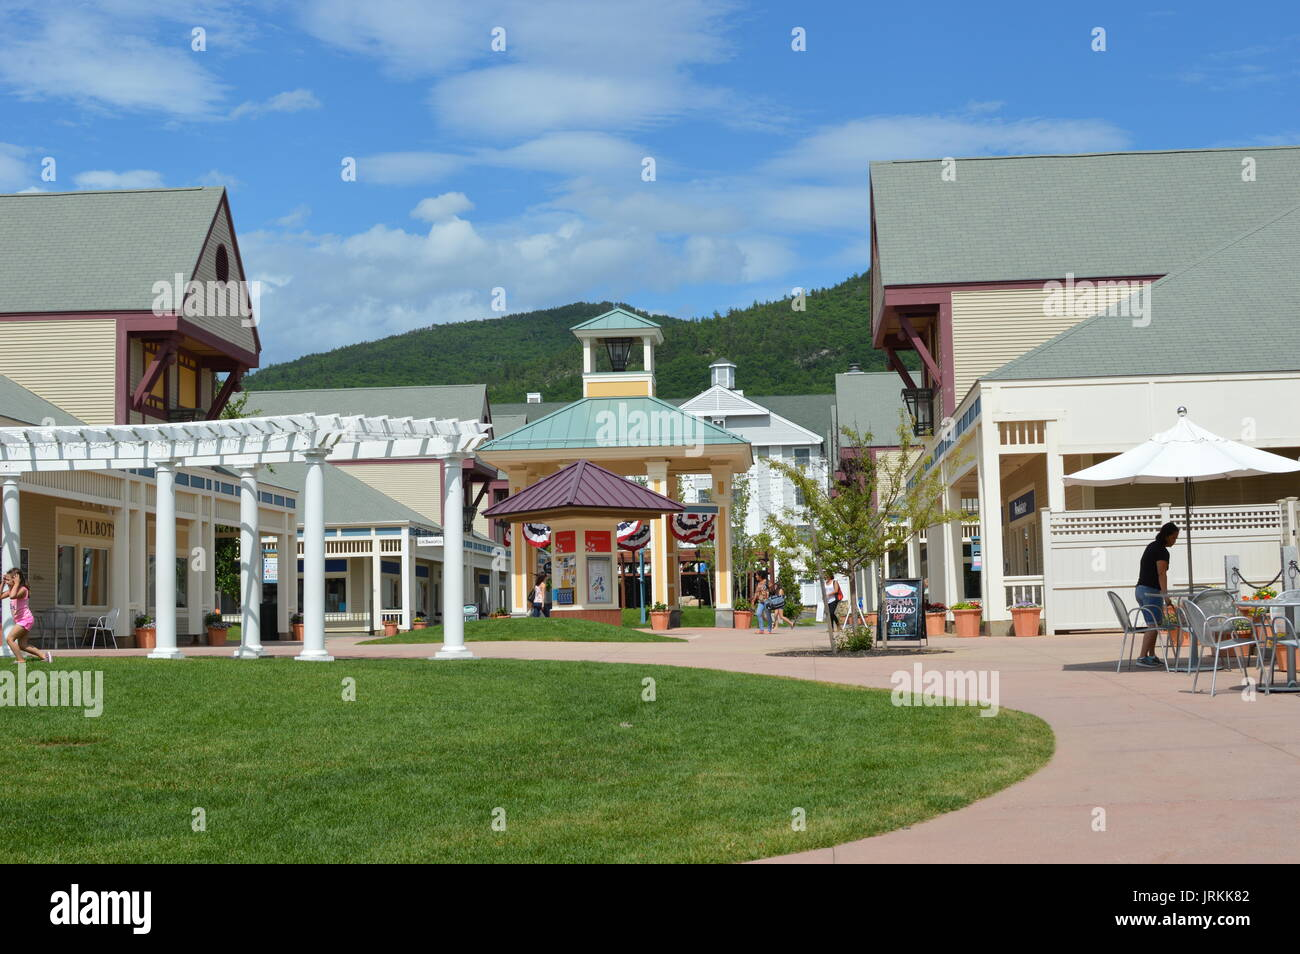 Shopping in North Conway, NH at Settlers Green New England's largest tax-free shopping outlet, Settlers Green is located right outside our hotel. Majestically set in the heart of Mount Washington Valley, enjoy stunning views as you head in and out of the more than 70 nationally known fashion, footwear and home decor stores.